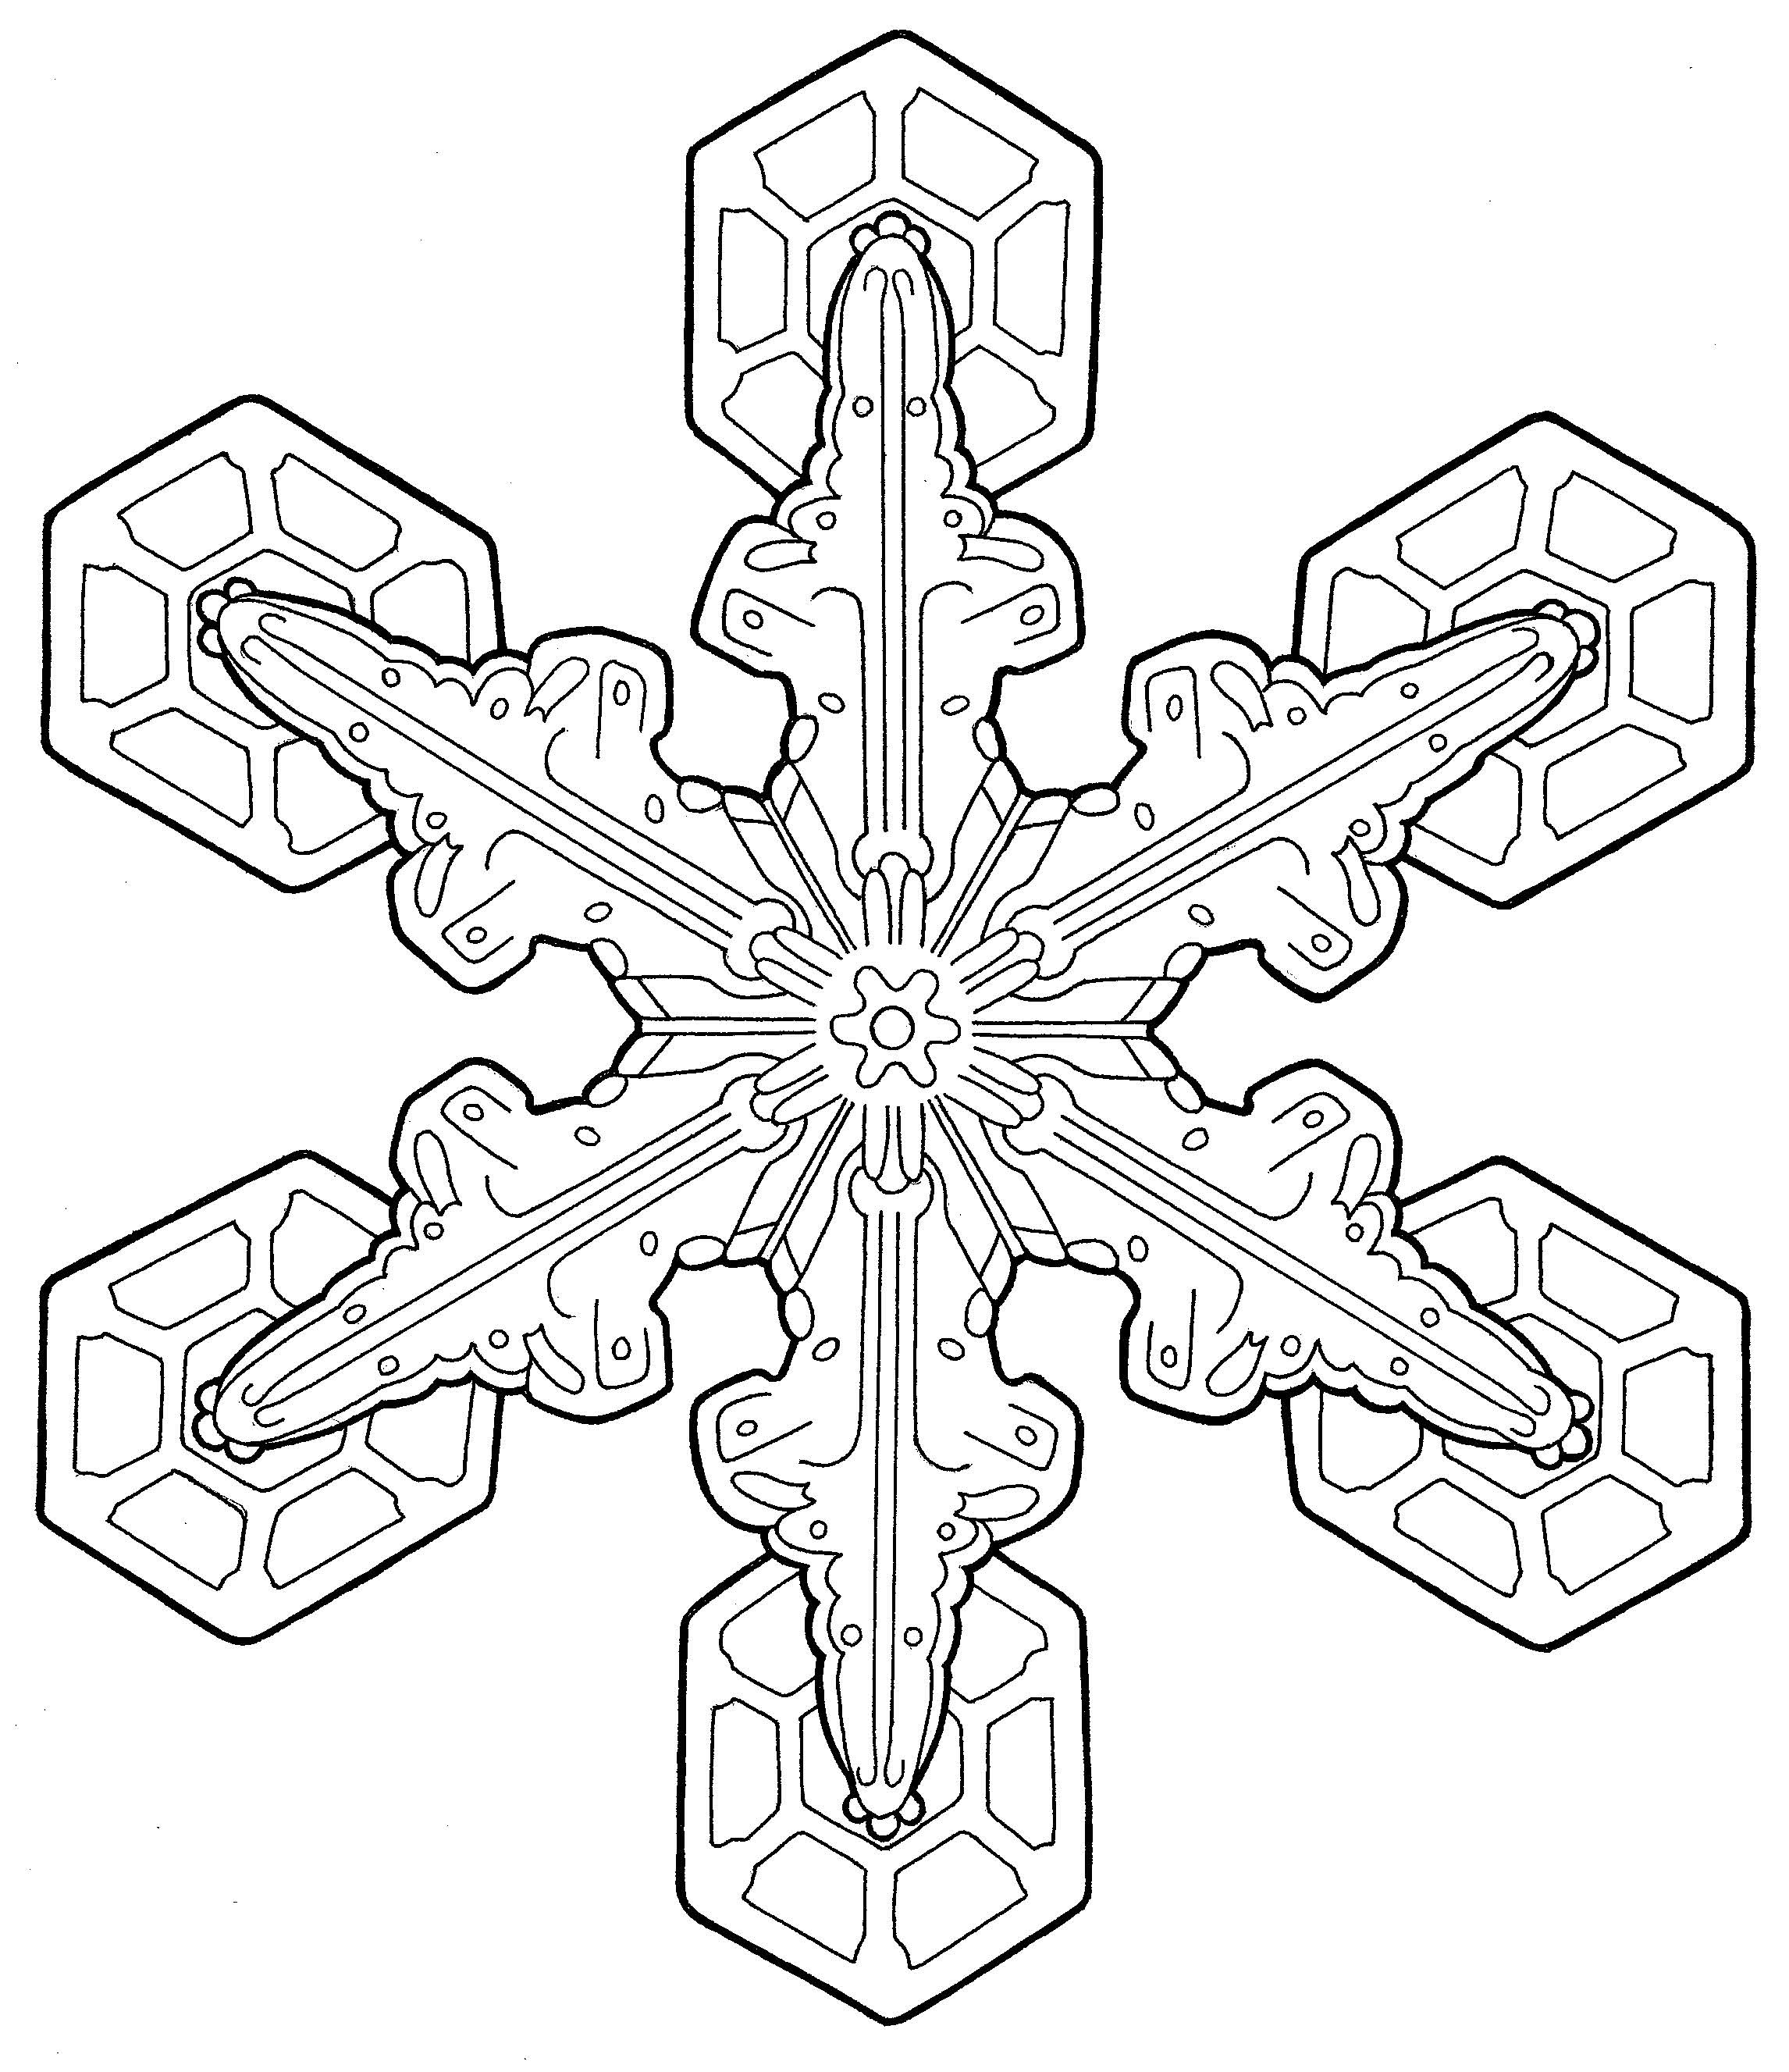 2292x2654 Holiday Coloring Pages For Adults In Glum Me At Bloodbrothers